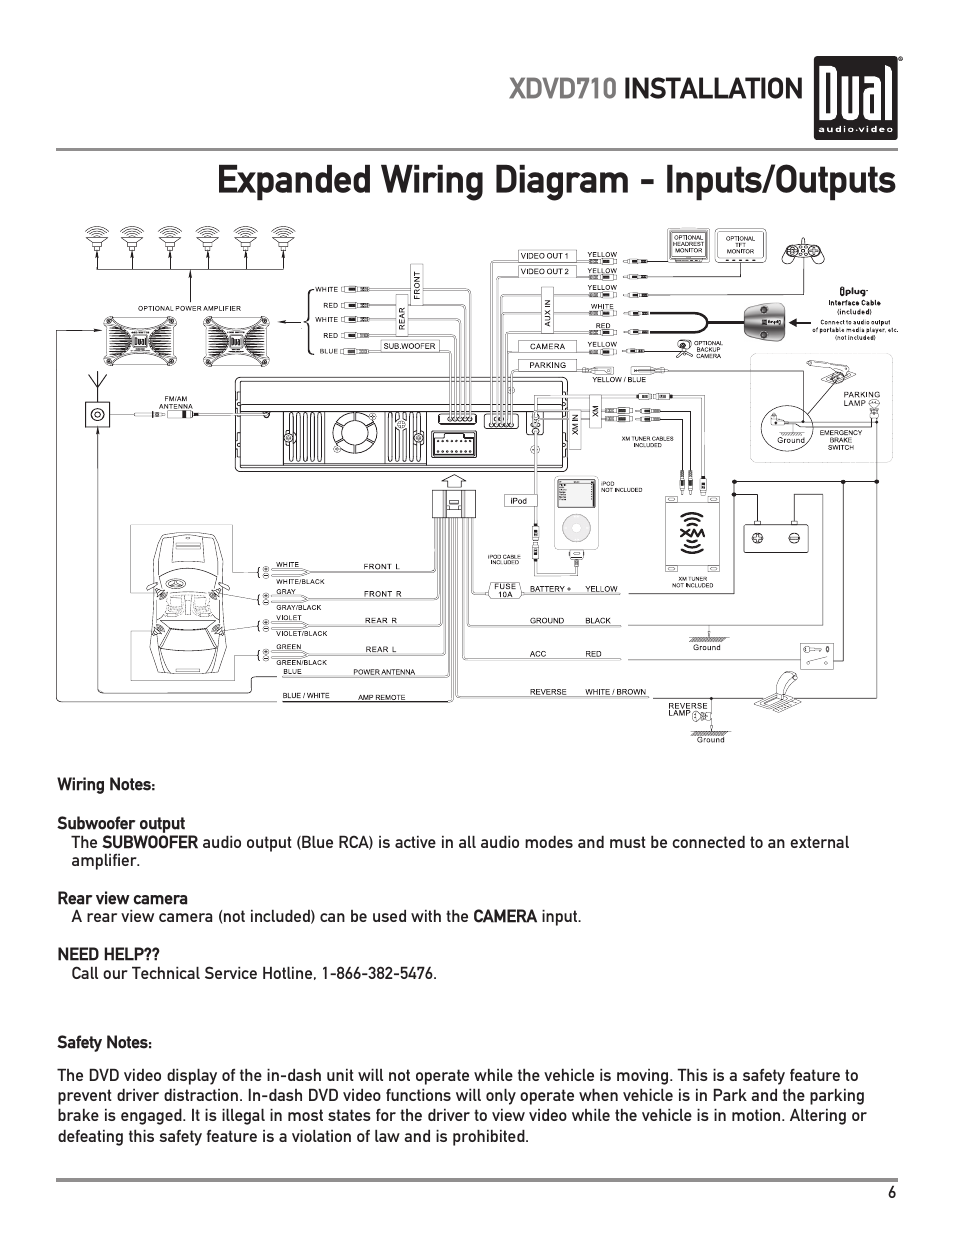 Dual cd wire harness wiring diagram images